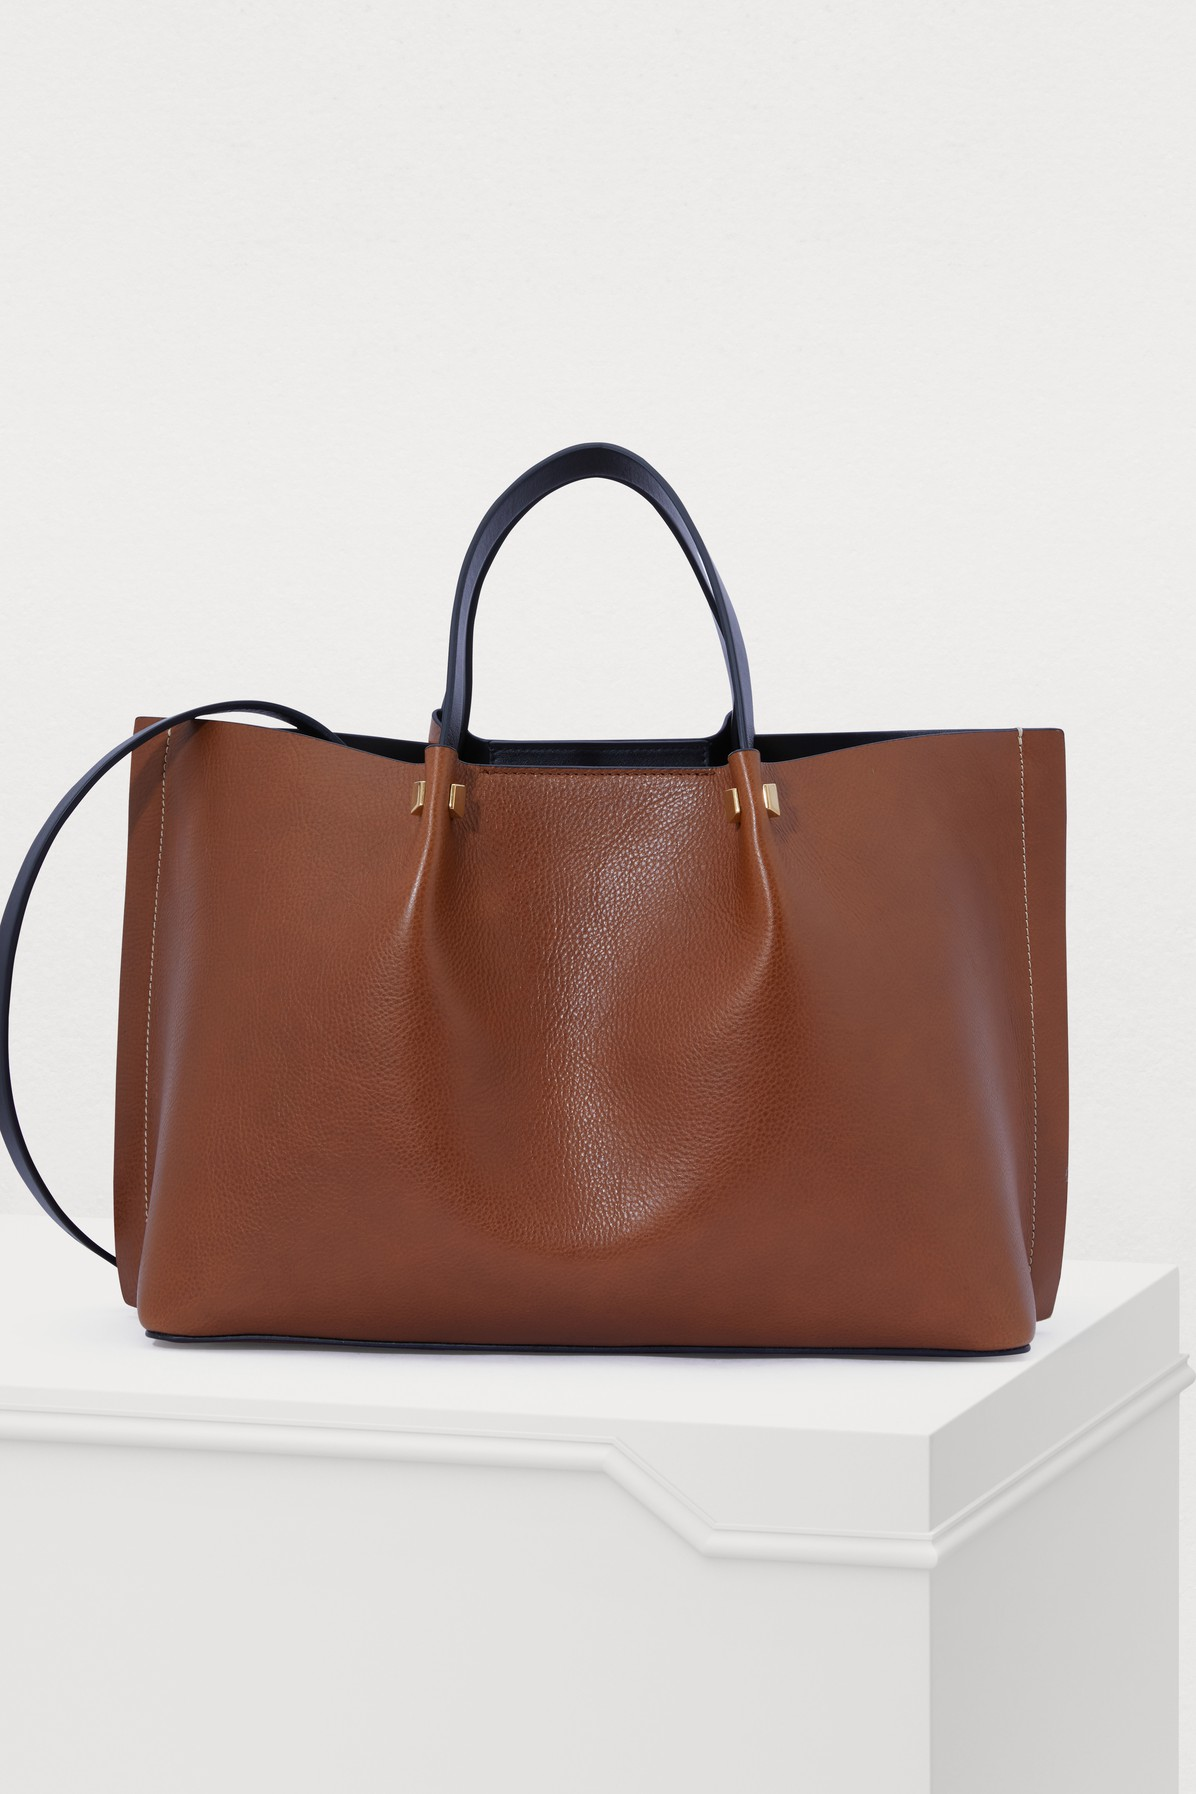 60f34dd6492 Valentino Garavani Escape Go Logo Tote Bag in Tan-Black